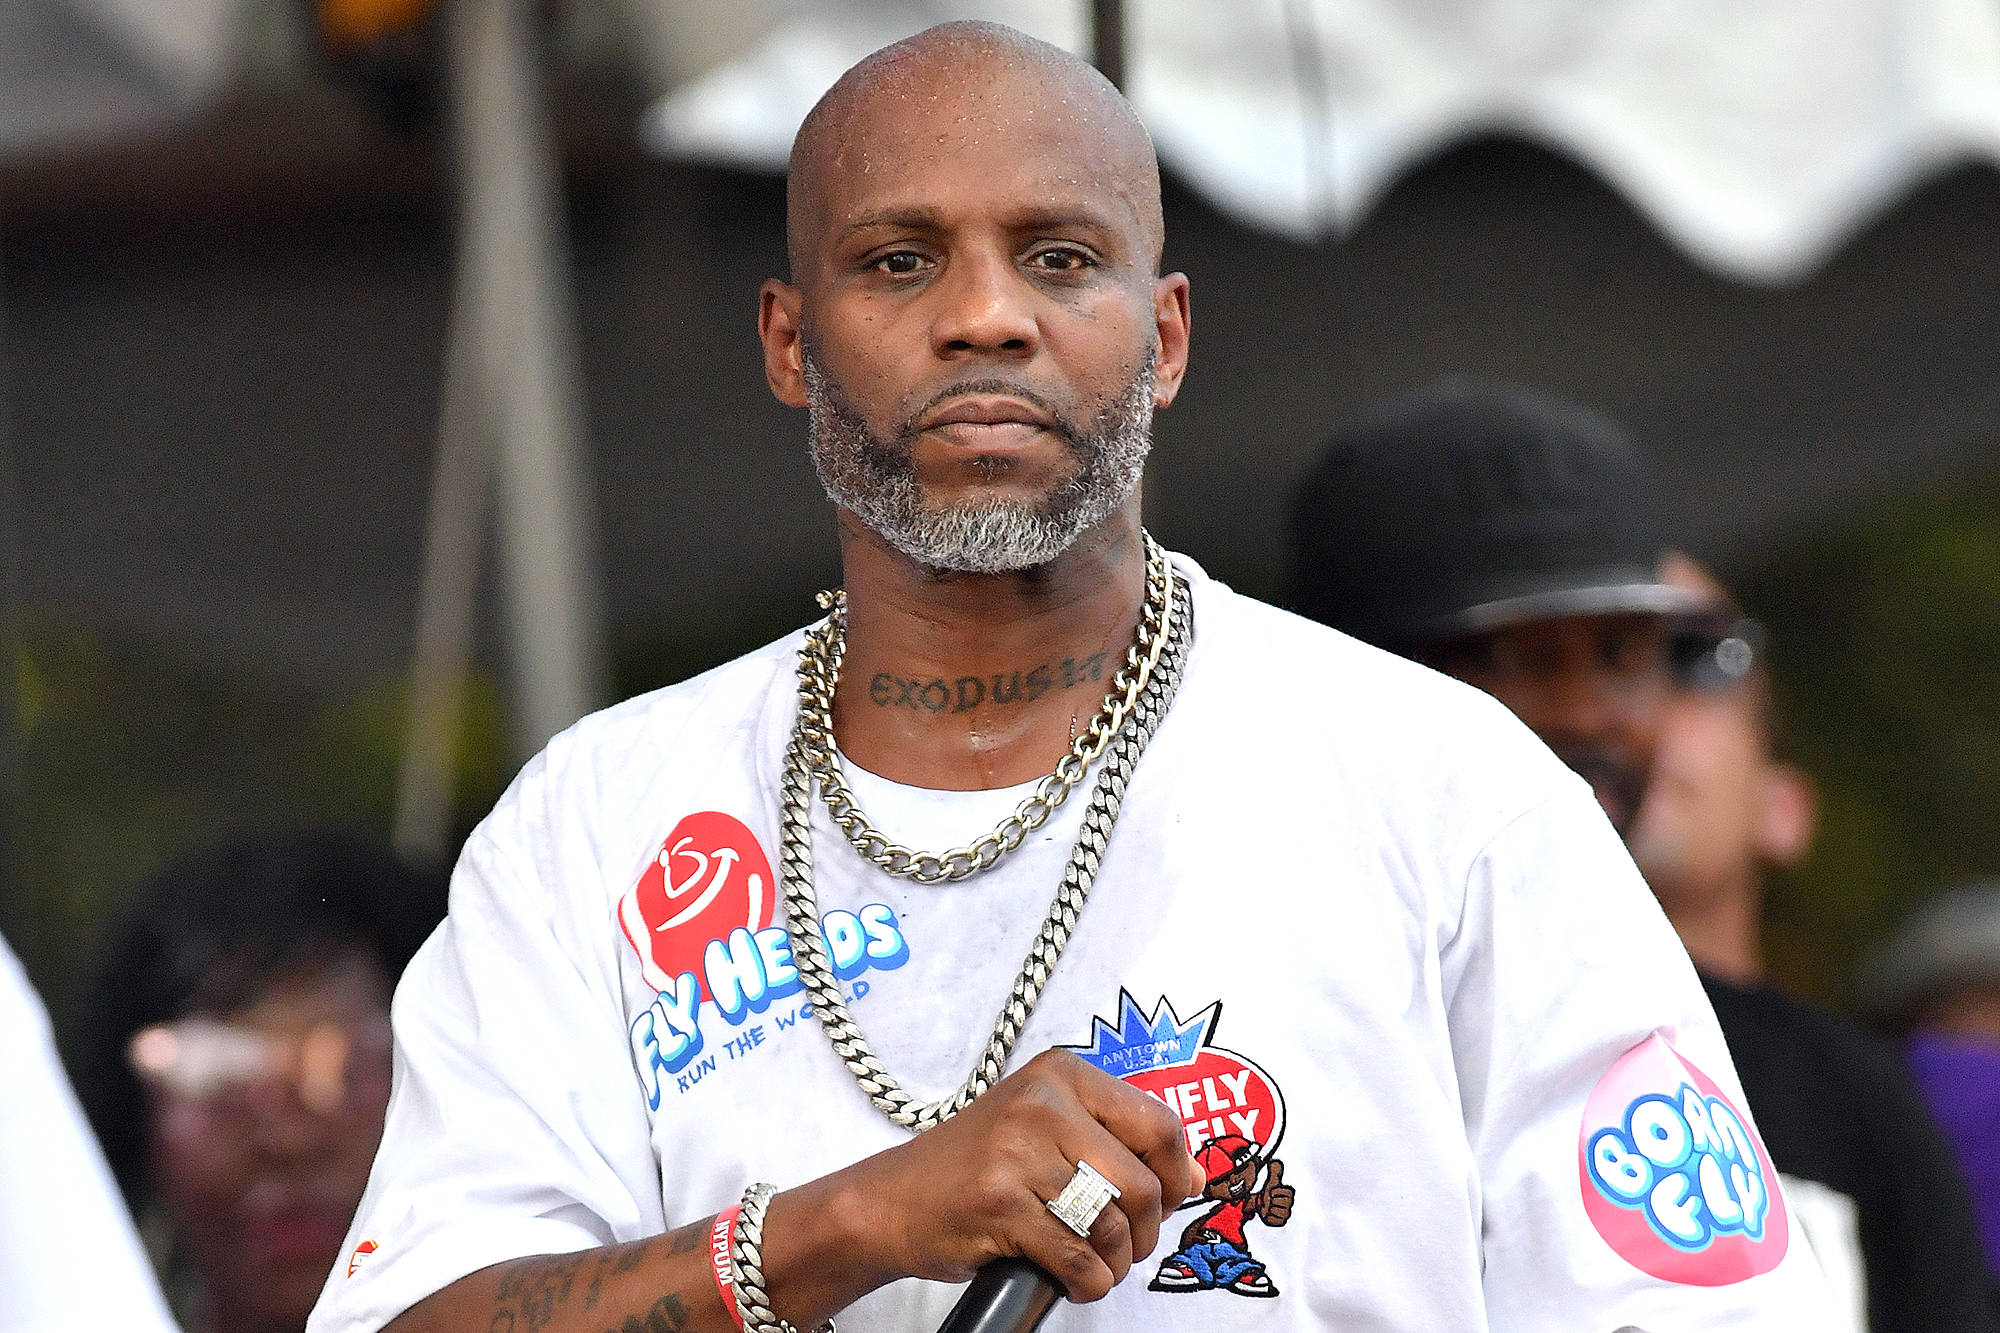 DMX STILL ON LIFE SUPPORT …